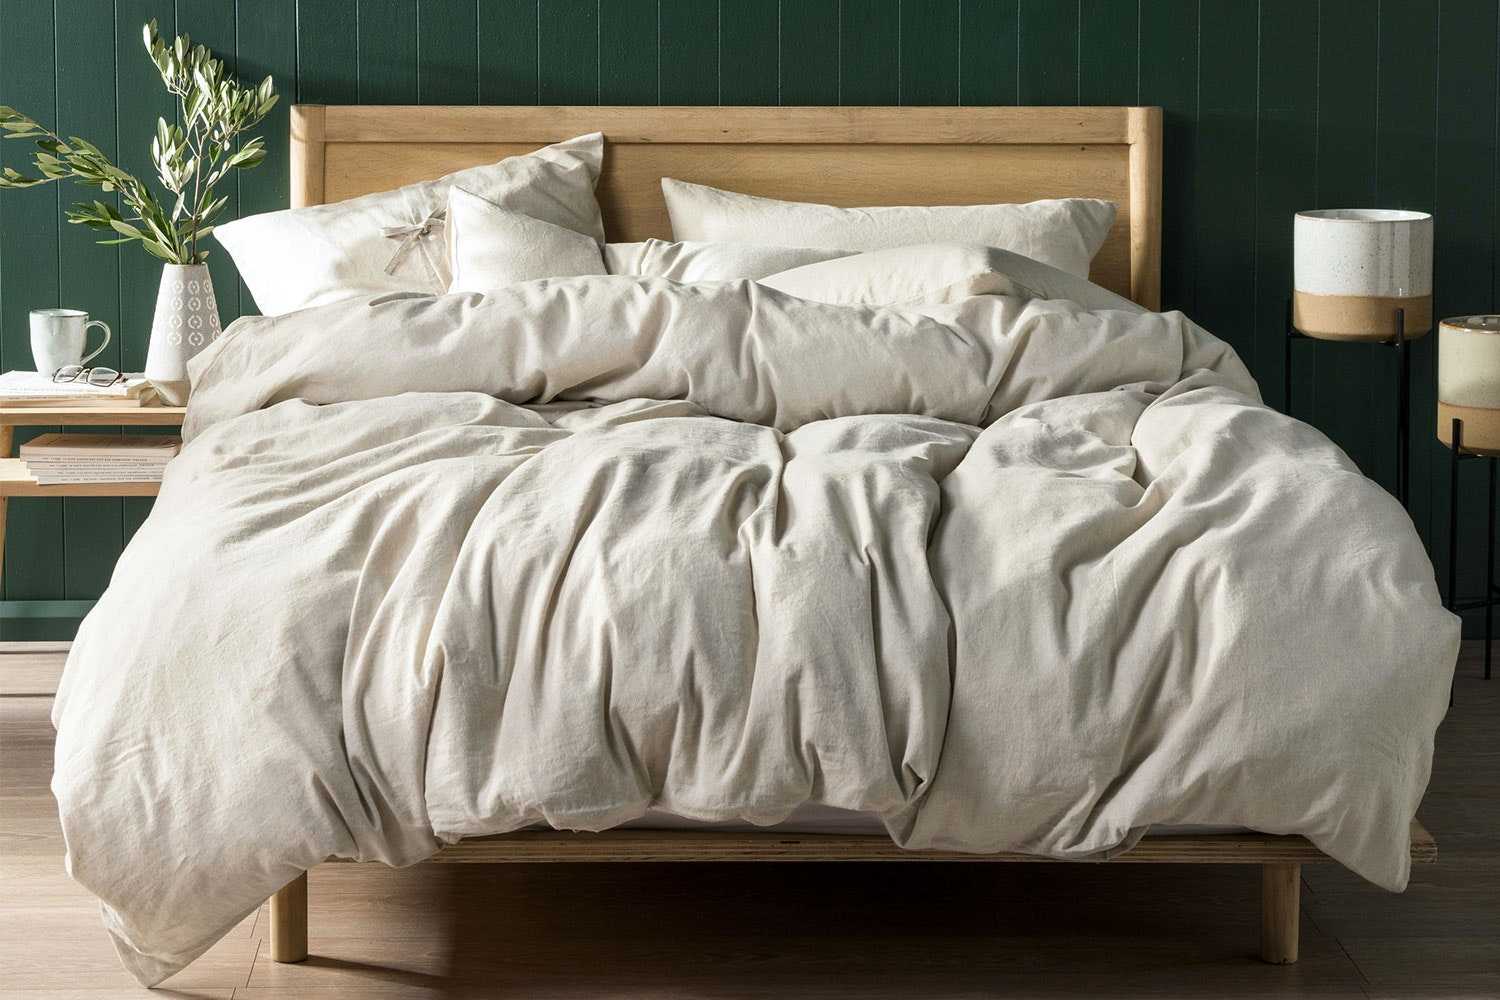 Nimes Natural Duvet Cover Set by Savona